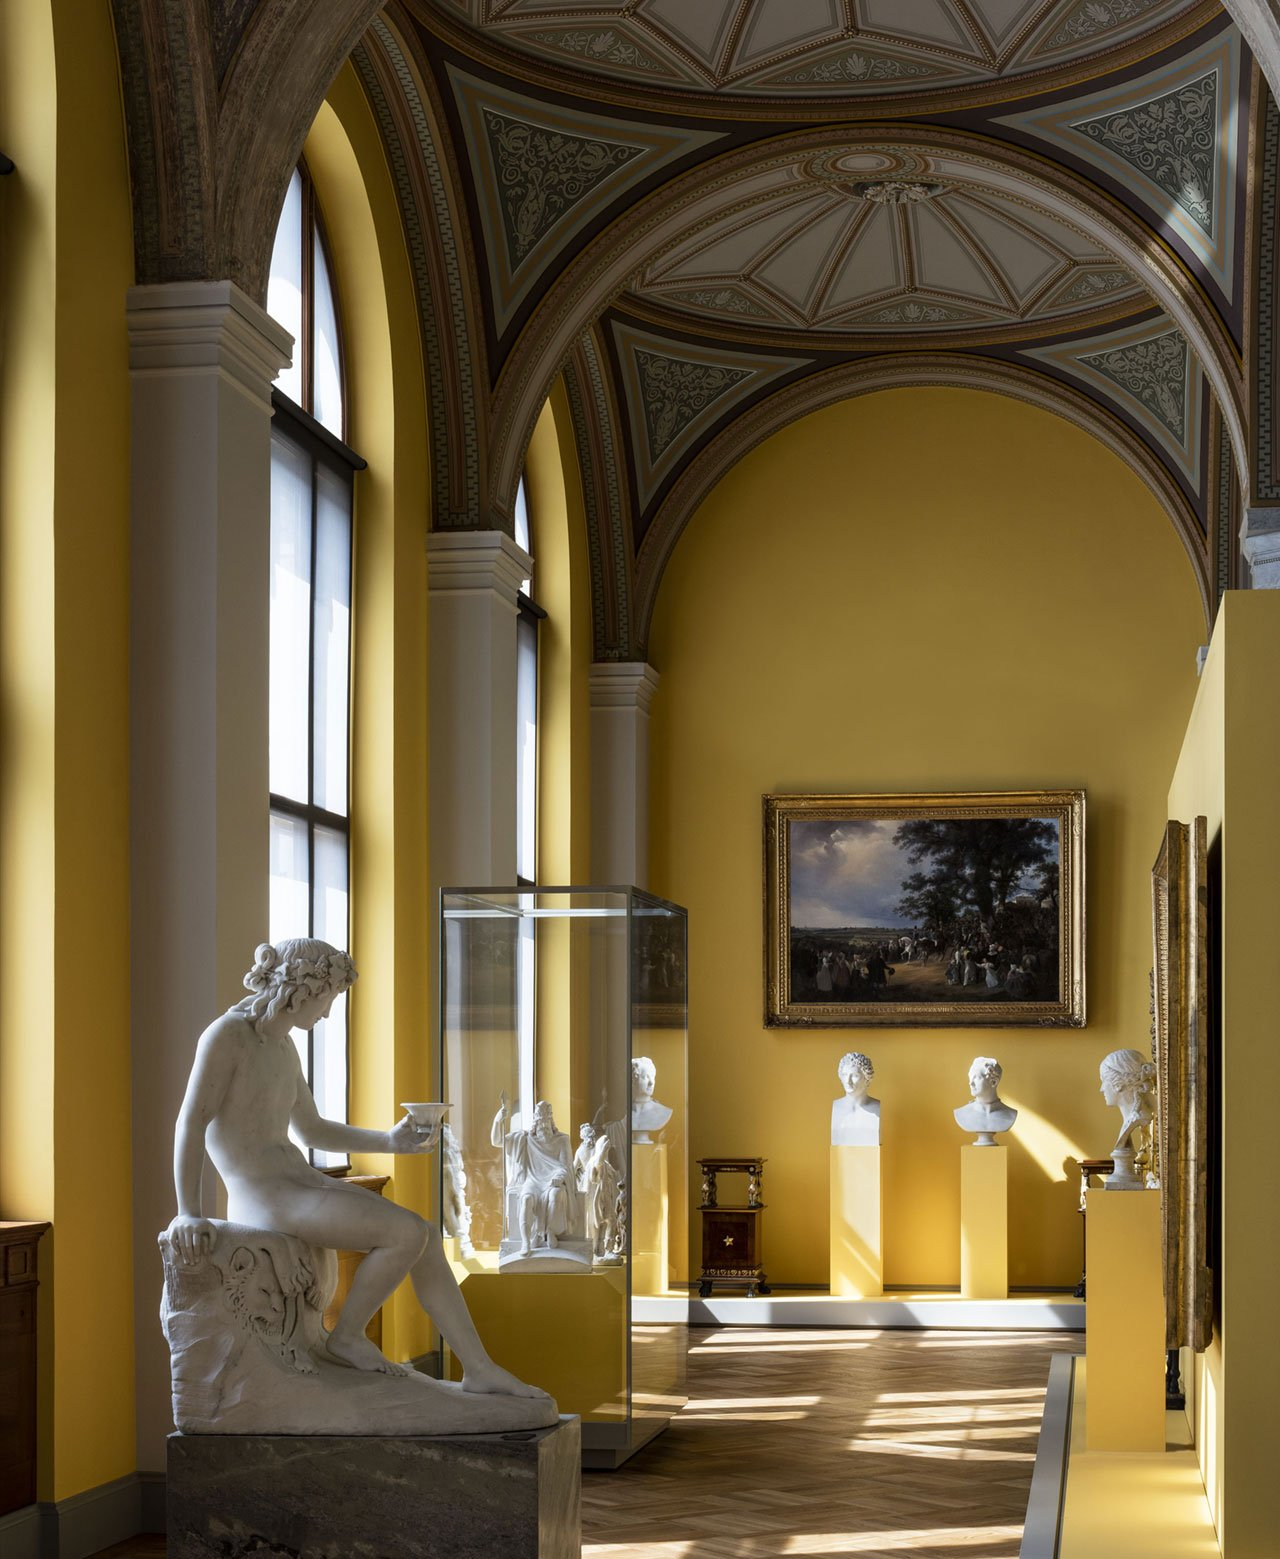 Nationalmuseum interior view. Photo by Bruno Ehrs.